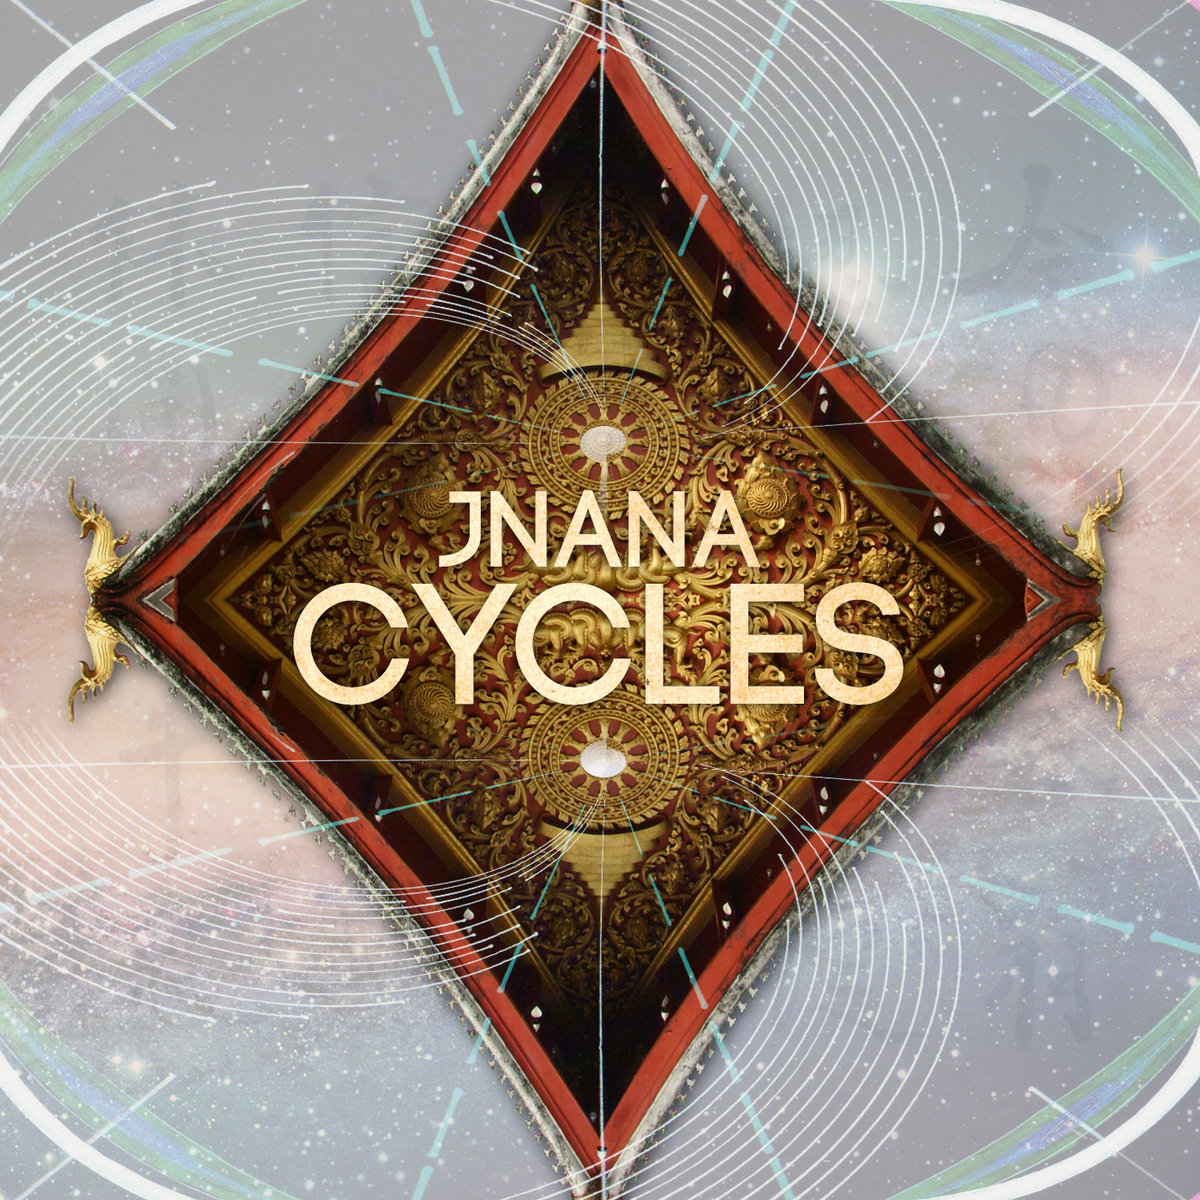 Jnana - Country Crunk @ 'Cycles' album (bass, crunk)